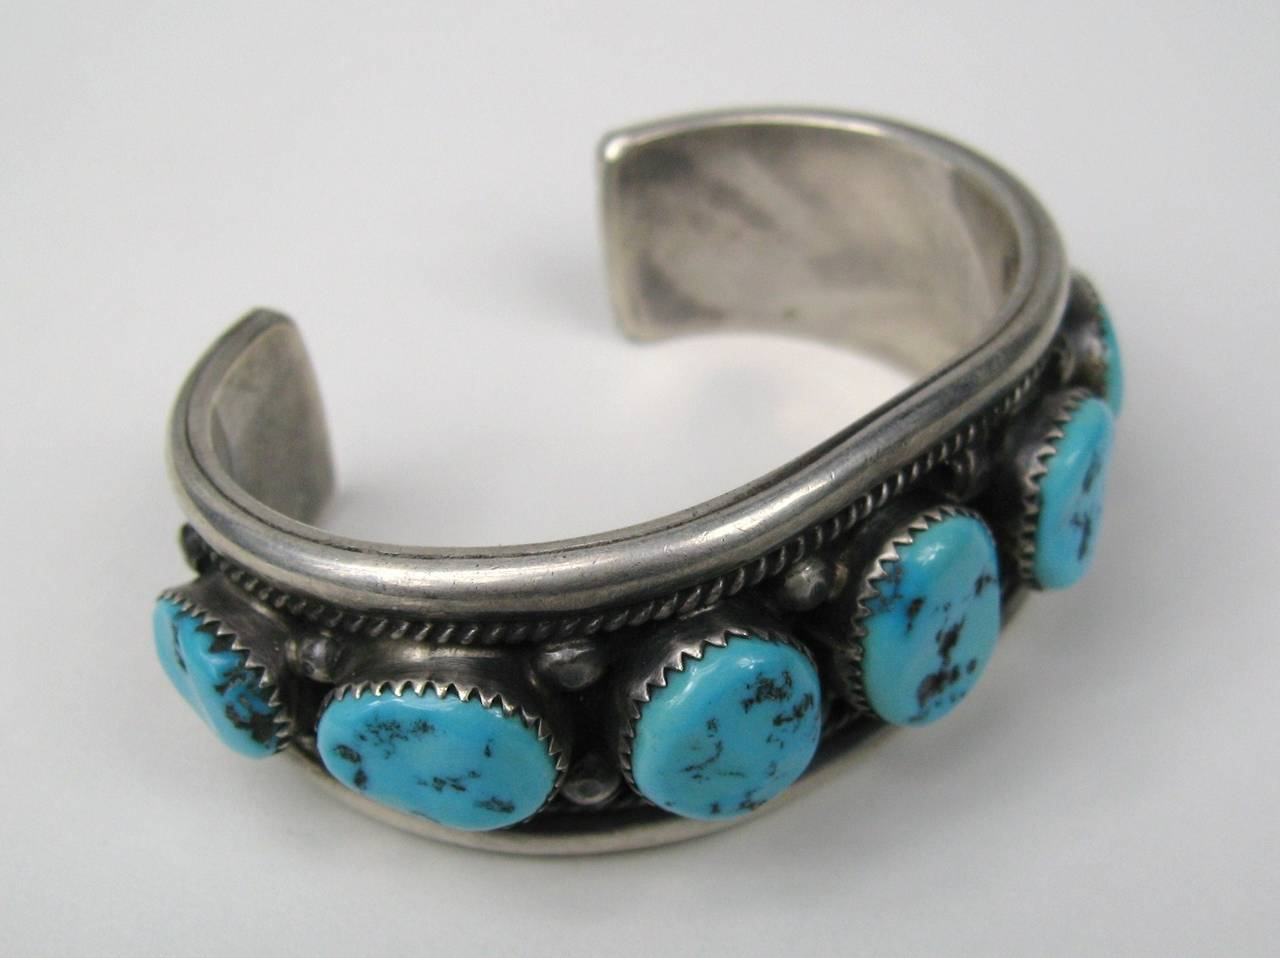 Sterling Silver Native American Navajo Turquoise Cuff Bracelet In Excellent Condition For Sale In Wallkill, NY